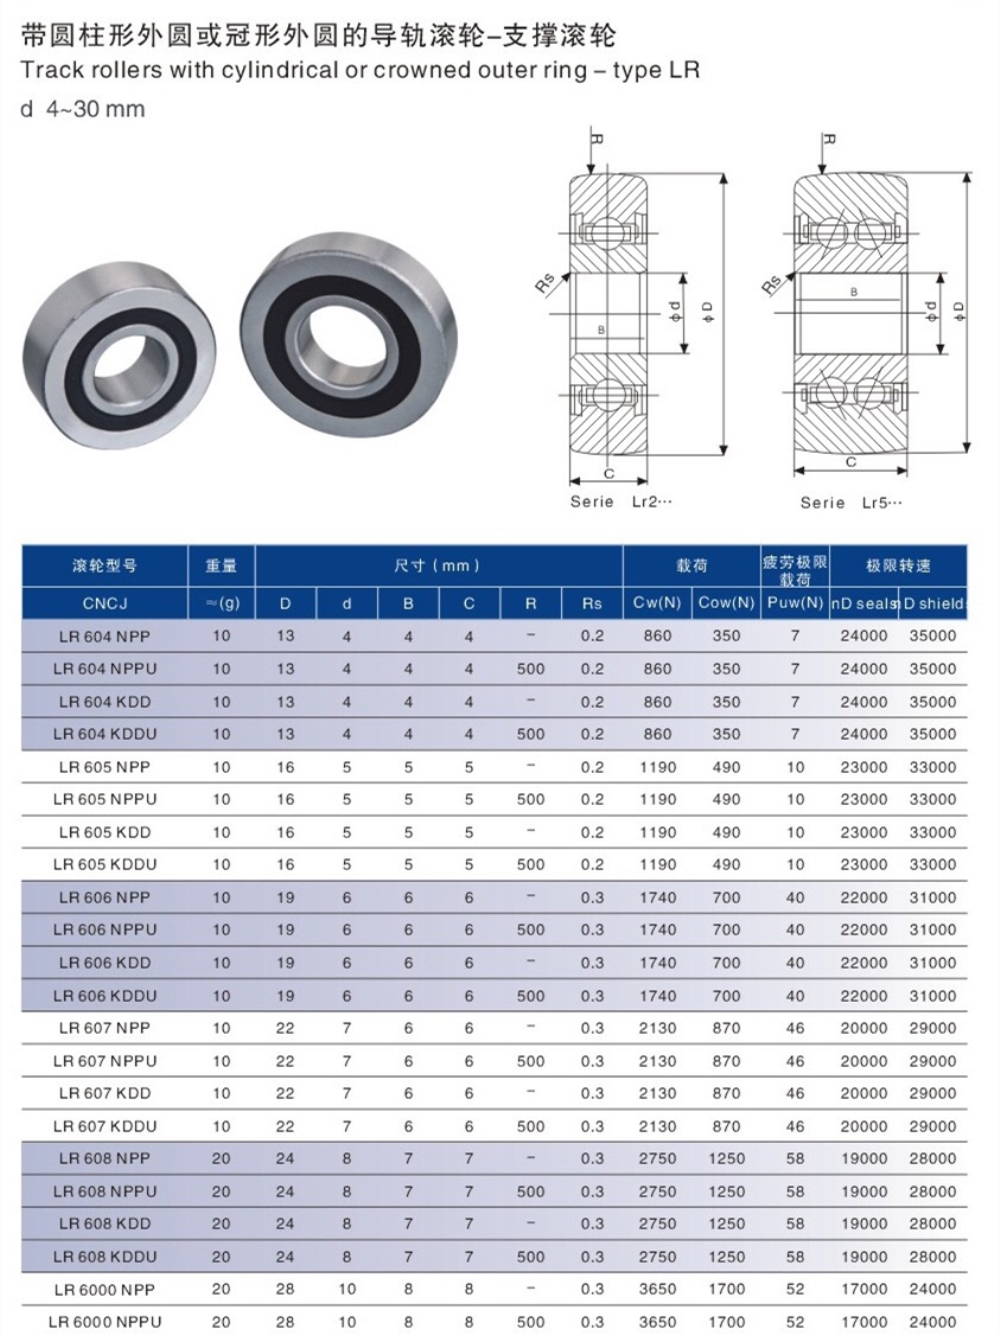 LR 606 LR606 KDDU bearings track roller bearings LR606KDDU sizes 6x19x6 mm